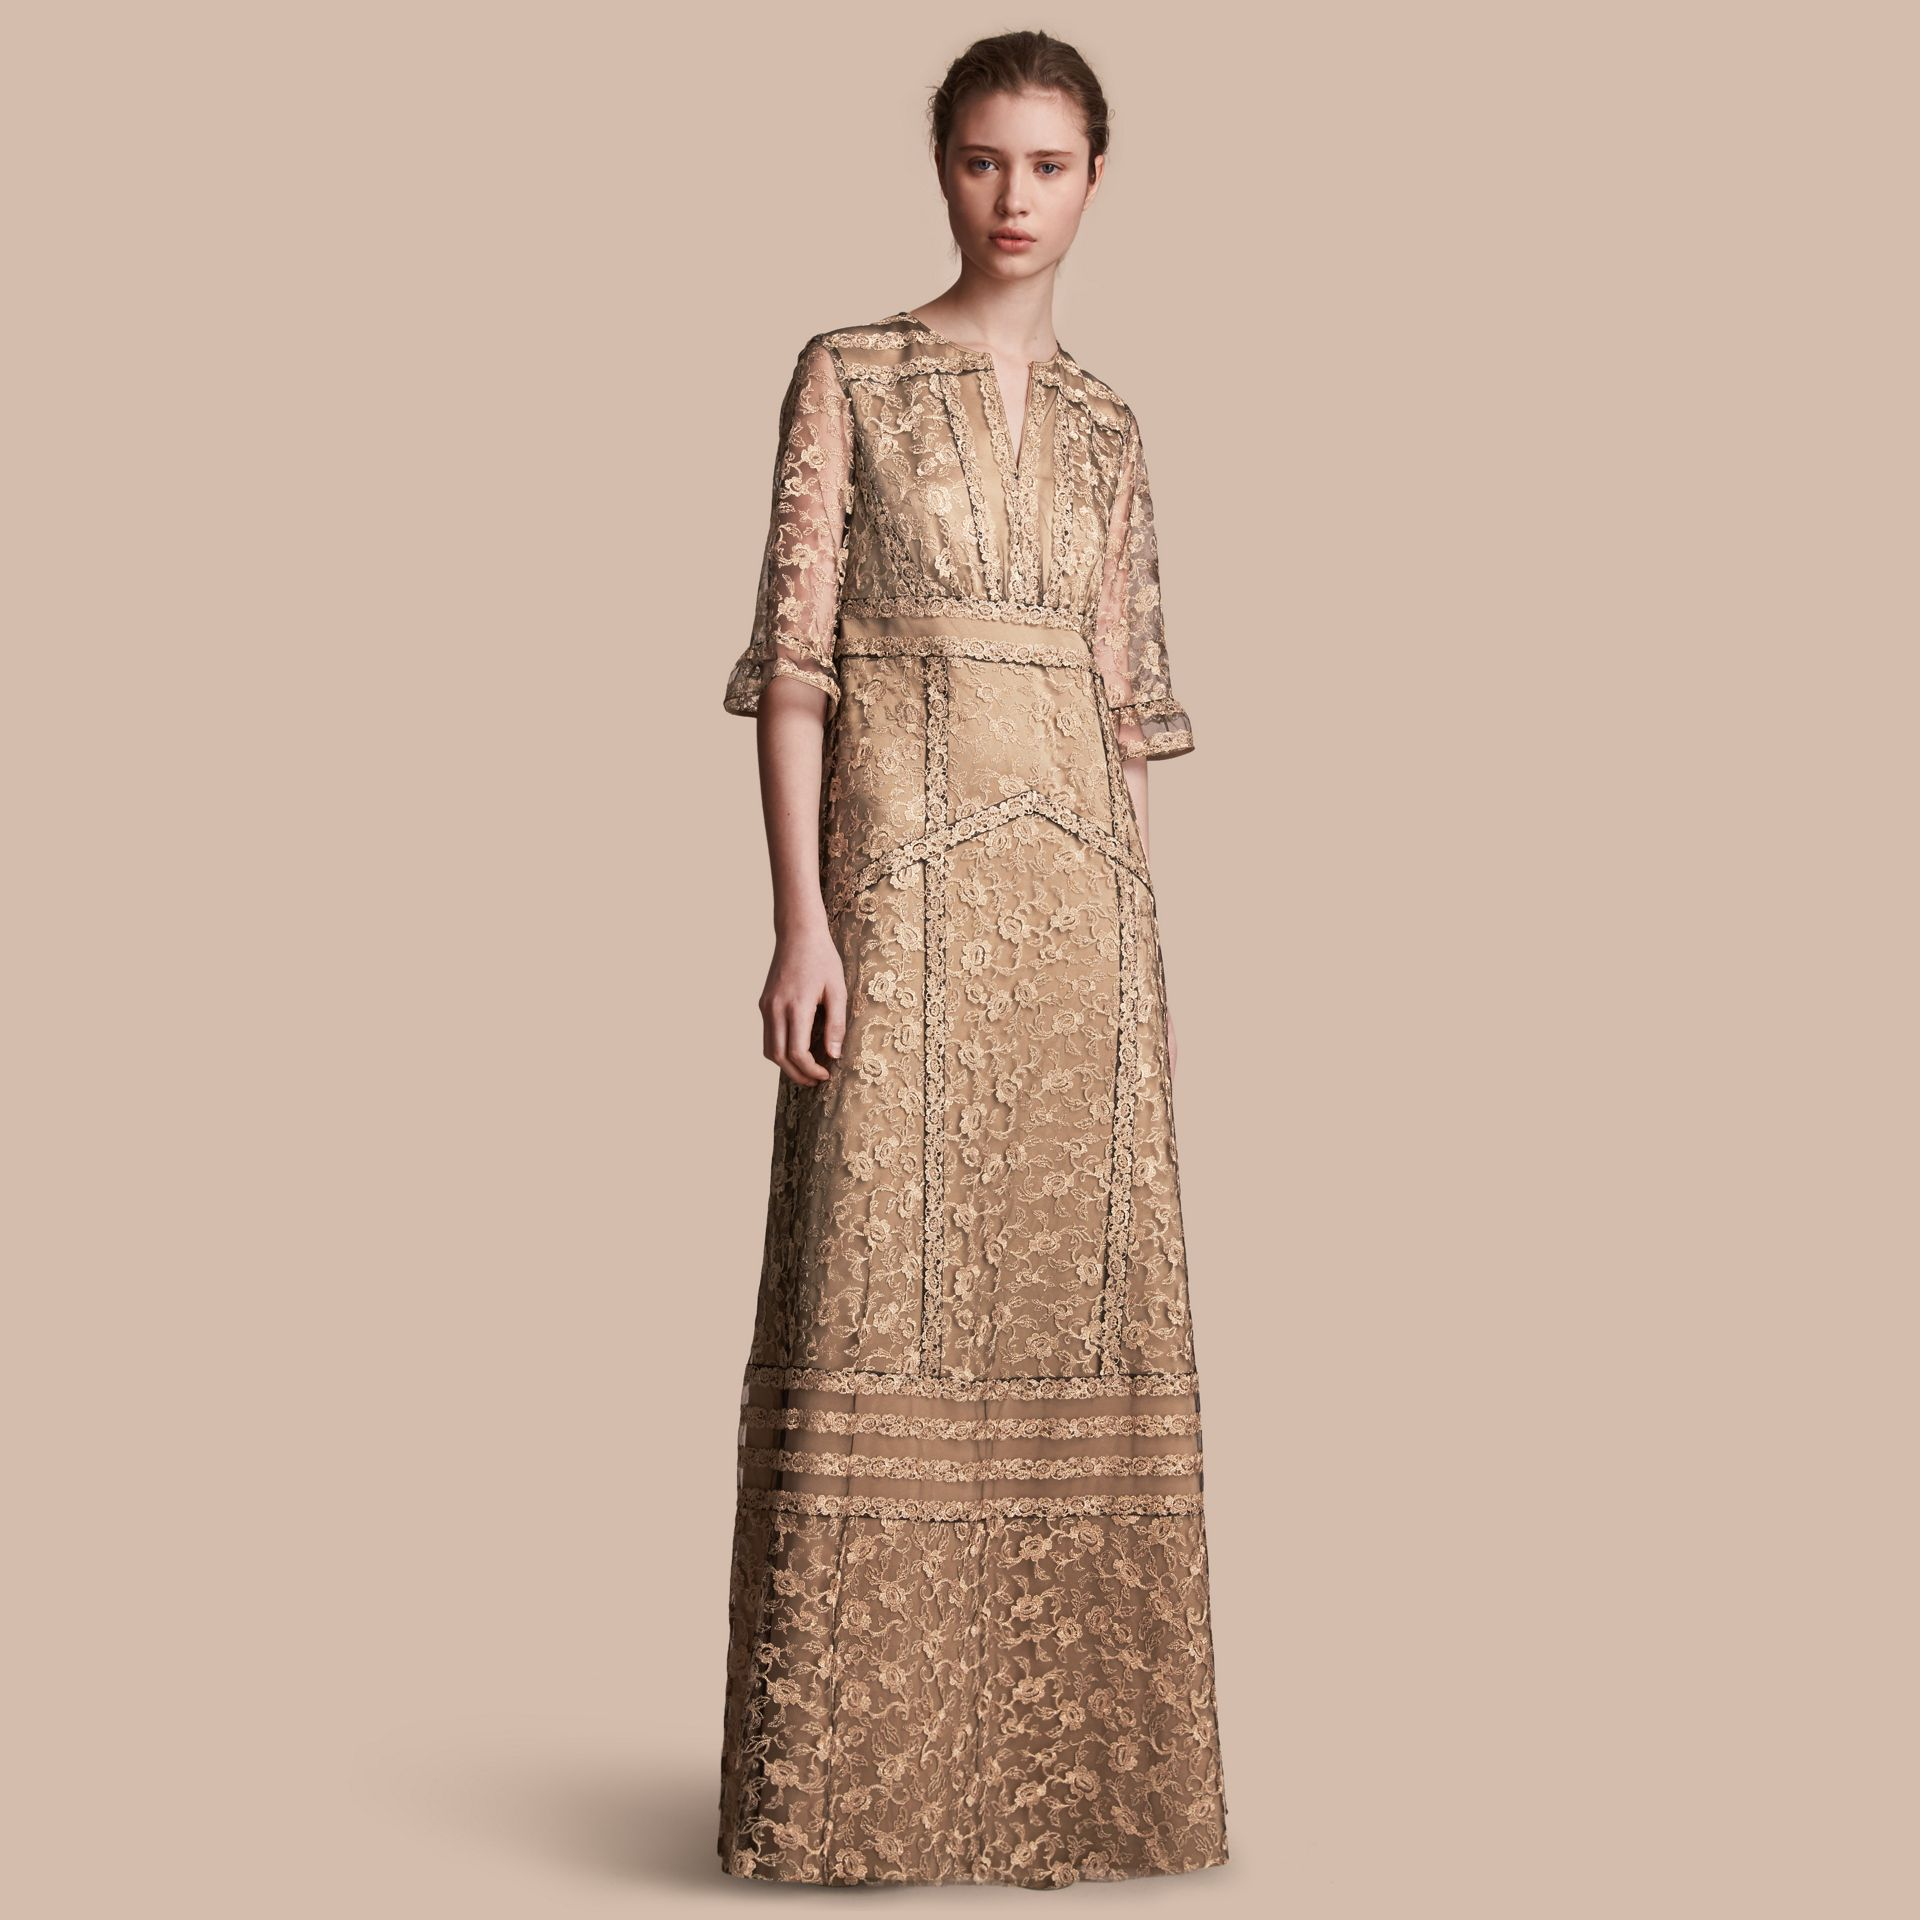 Floral Lace Tulle Dress in Gold - Women | Burberry Hong Kong - gallery image 1